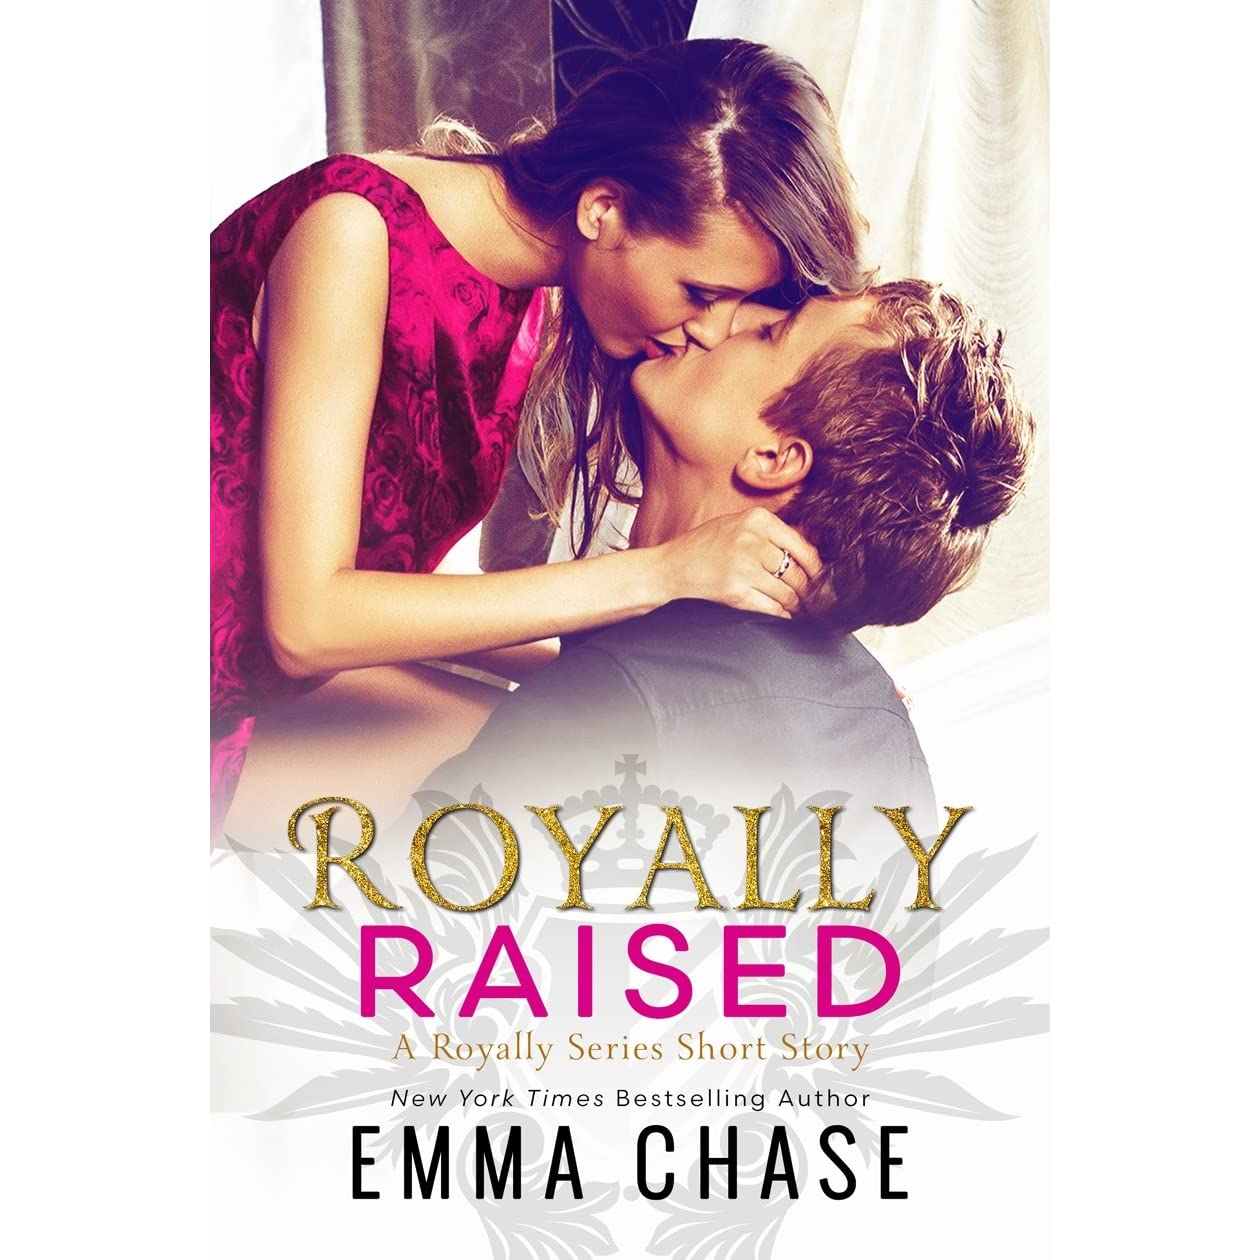 Over ruled emma chase goodreads giveaways